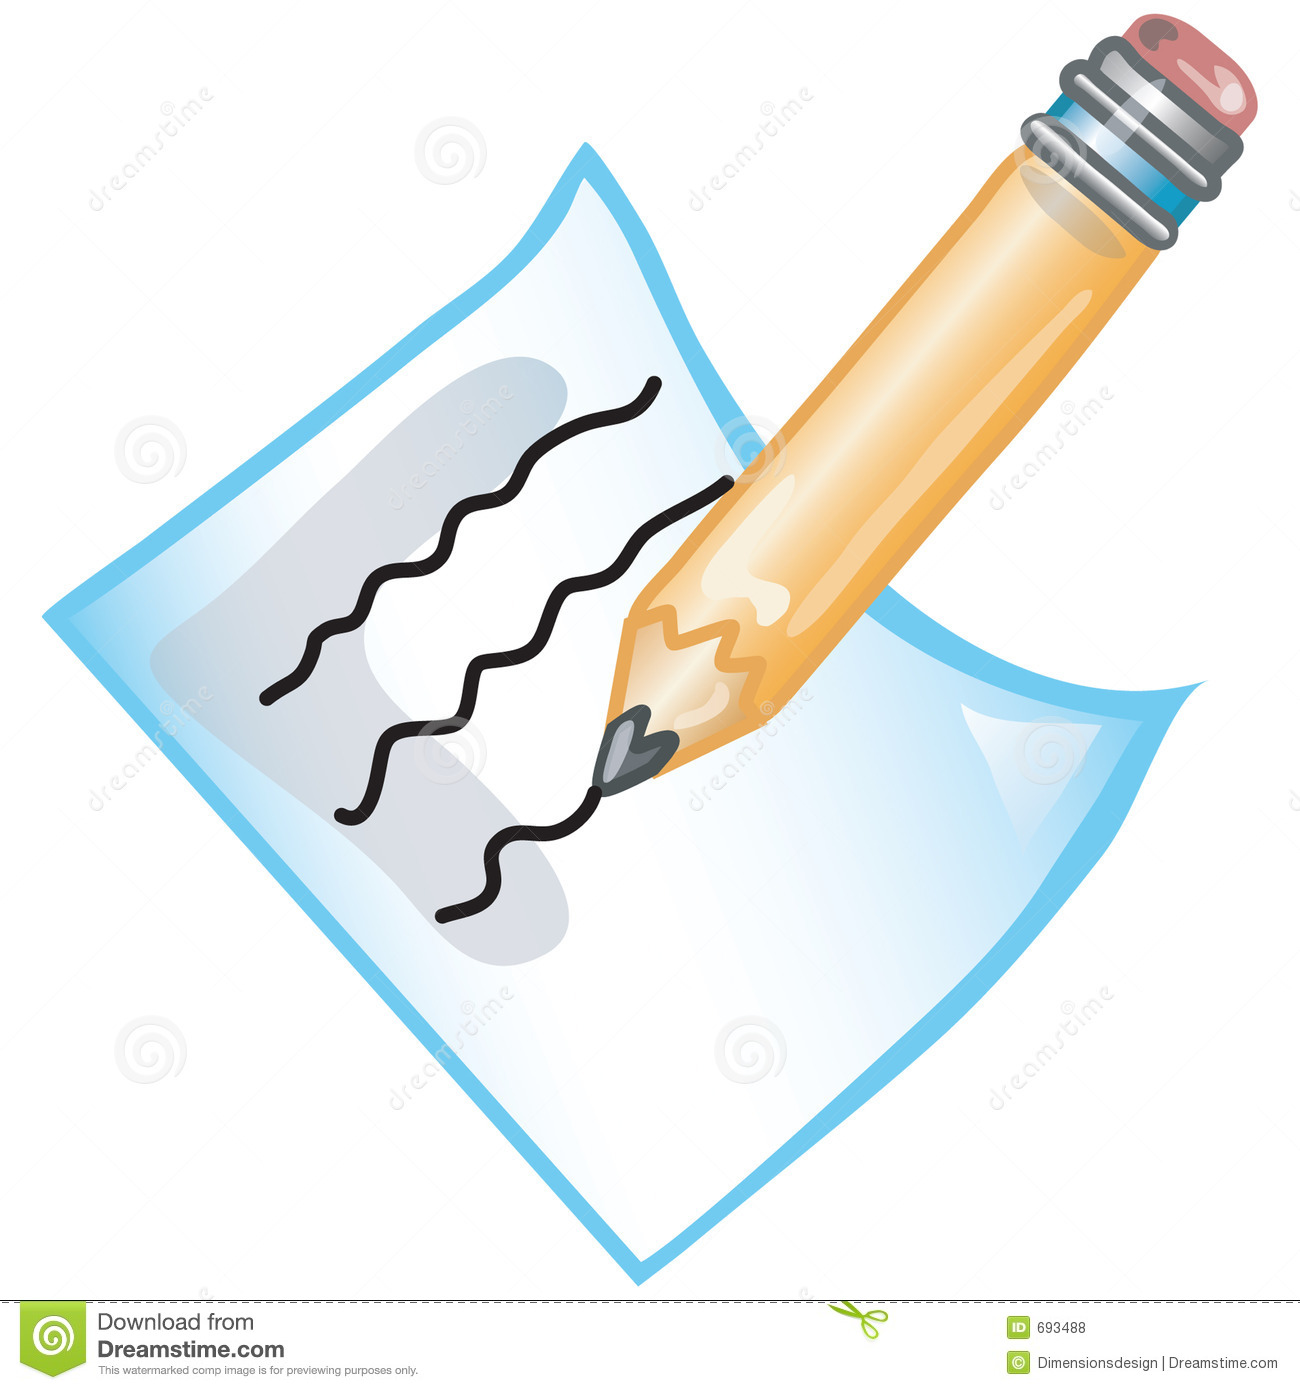 Stylized Icon Of A Pencil And Paper File 3 Of 20 In This Series